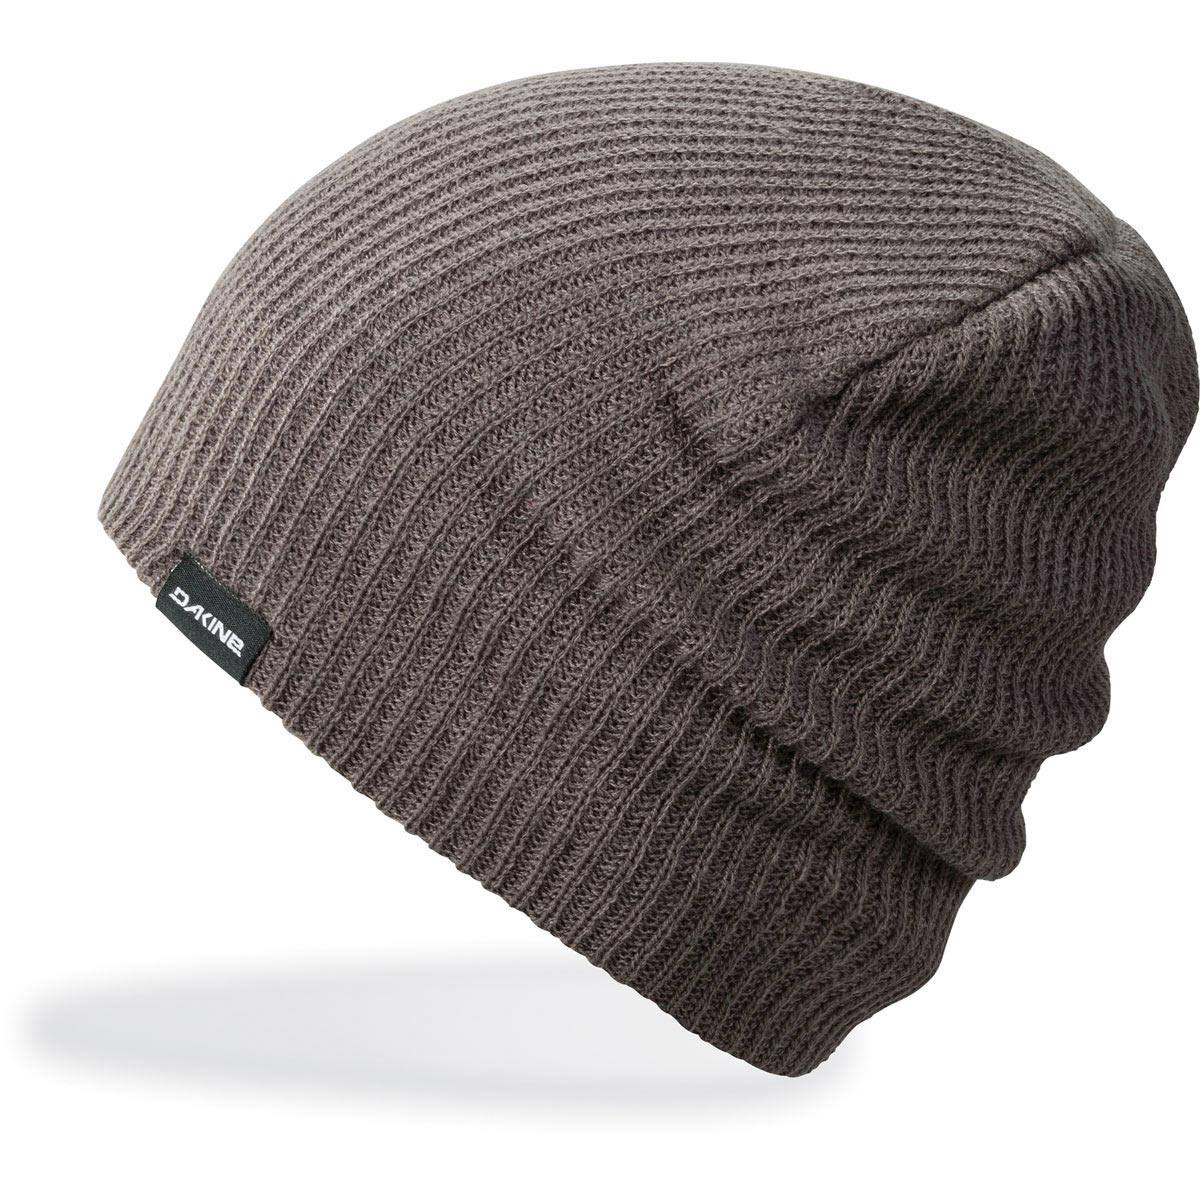 Dakine Tall Boy Men's Acrylic Knit Beanie - Charcoal